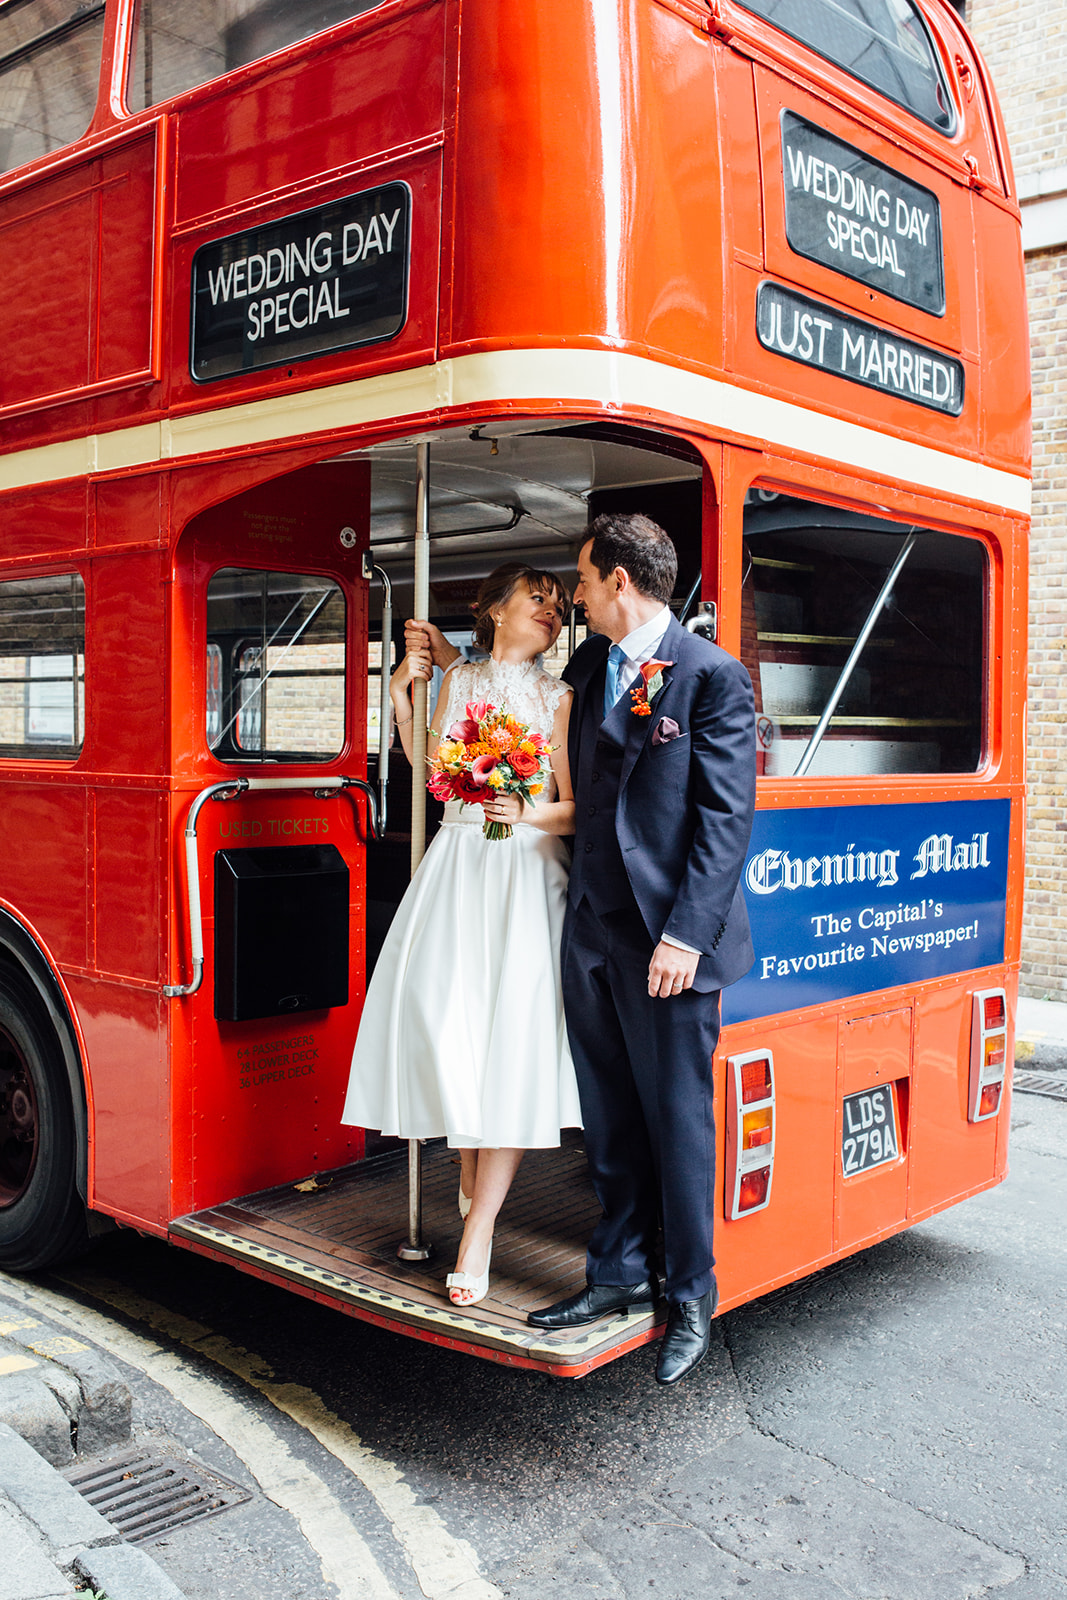 A London City Wedding planning guide from Kent Documentary Wedding Photographer Matilda Delves